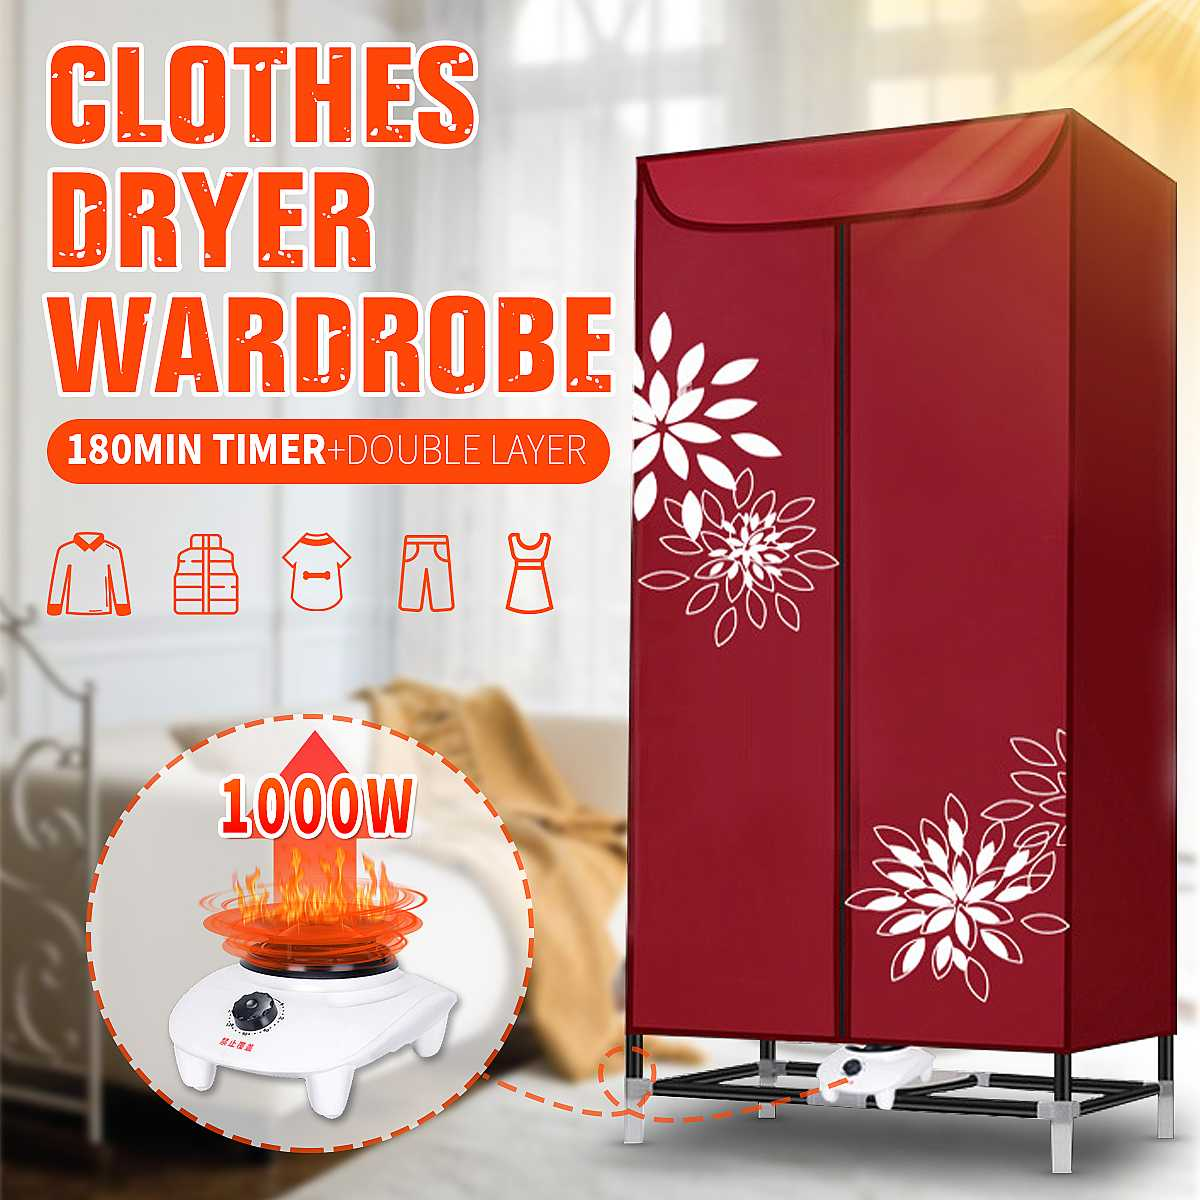 1000W Electric Cloth Dryer Household Portable Cloth Shoes Boots Dryer Power Motor Drying Warm Wind Laundry Garment 180 Min Timer